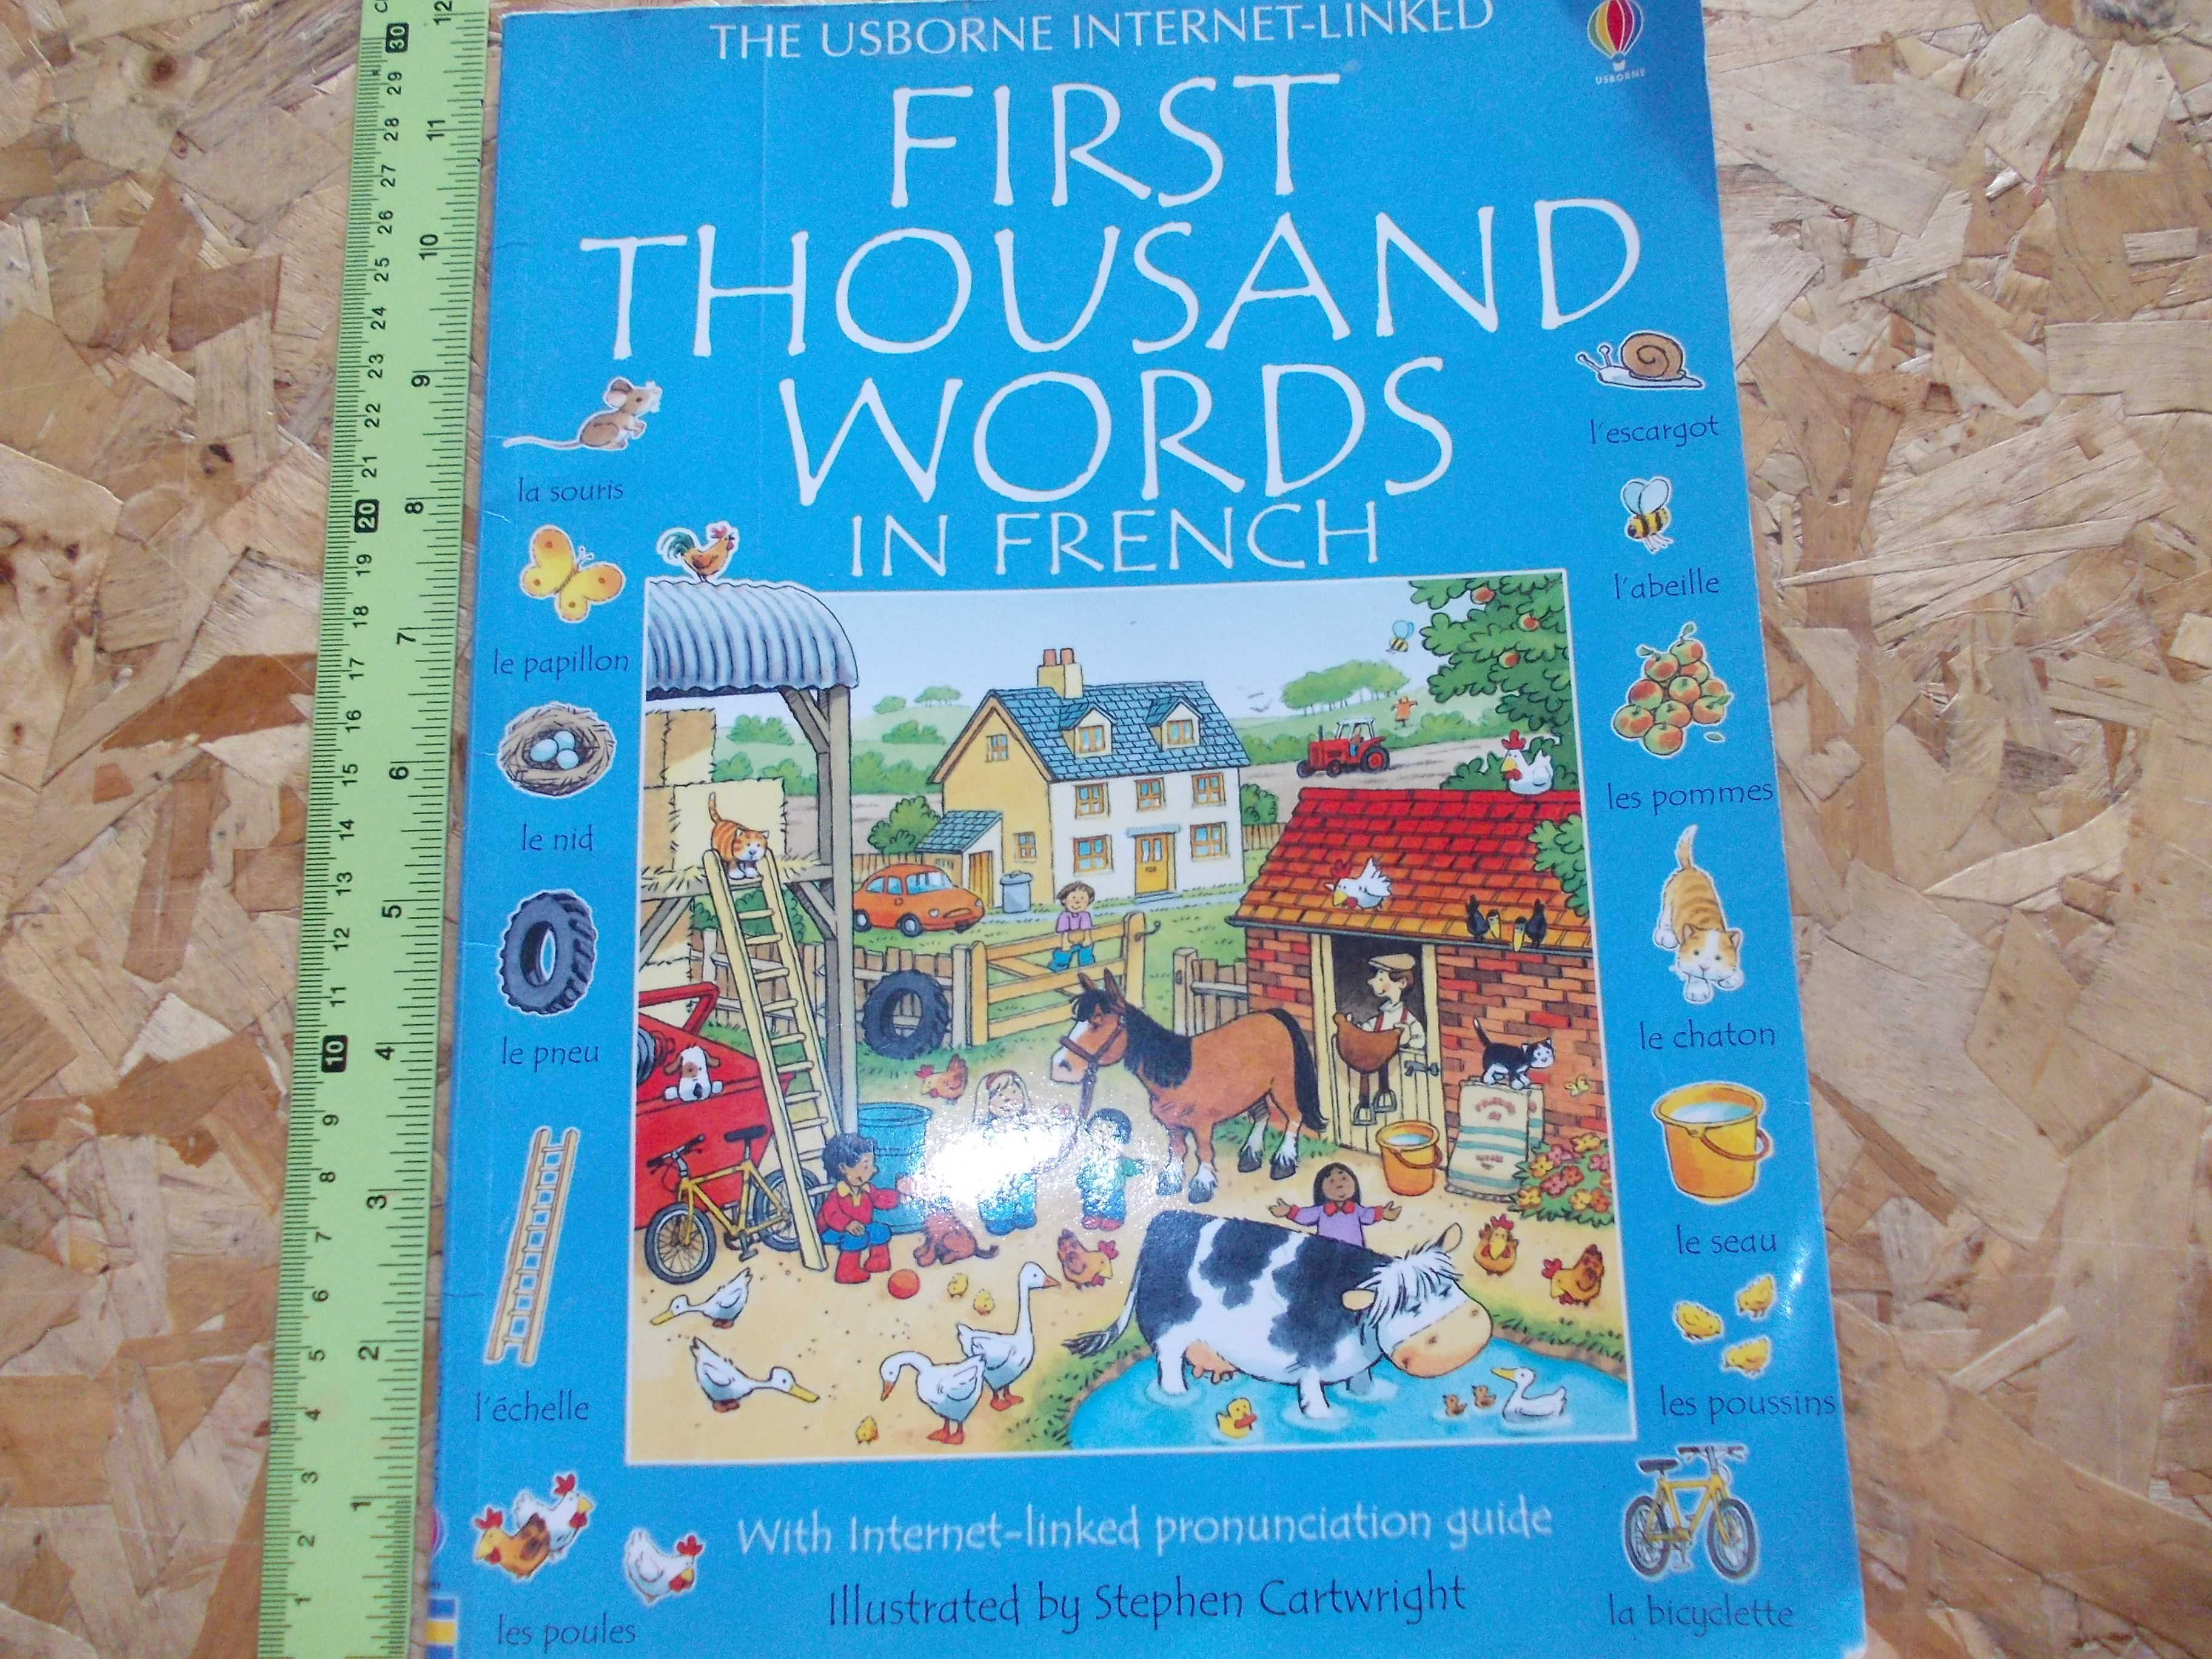 First Thousand Words in French (The Usborne Internet-Linked) (Condition: 65-70%)